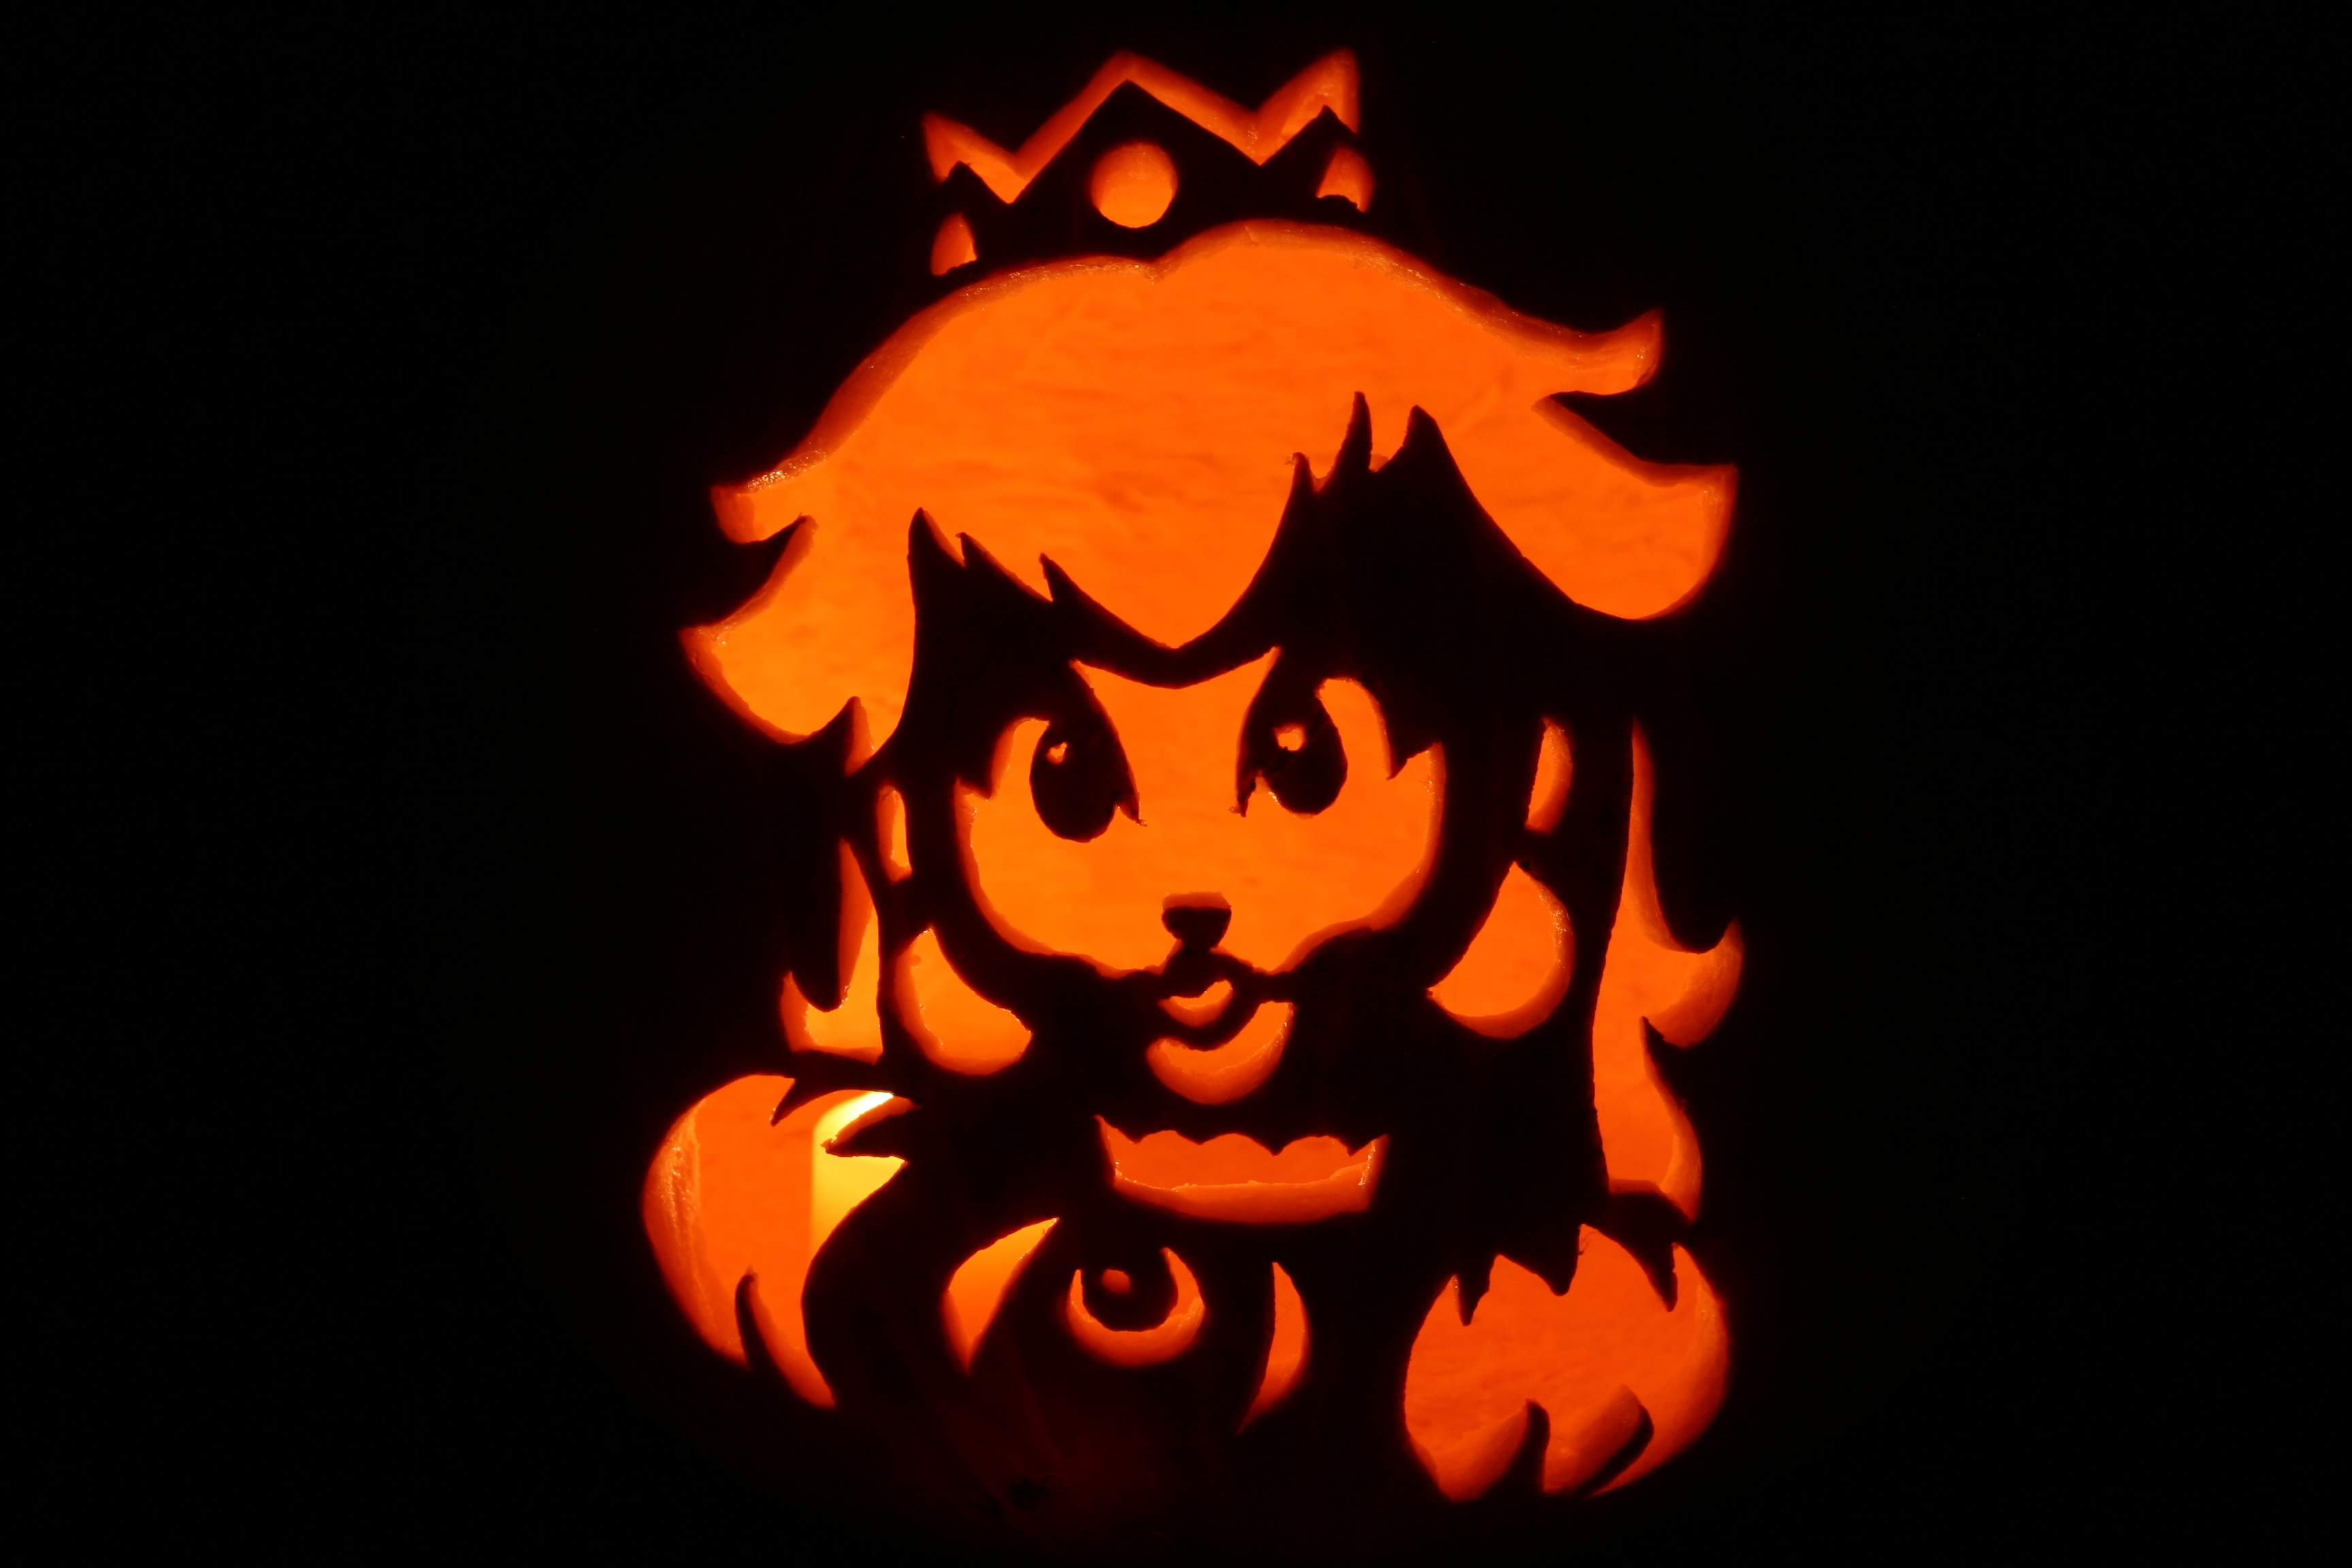 My Daughter's Amazing Pumpkin Carvings! | We Love The Stars Too Fondly